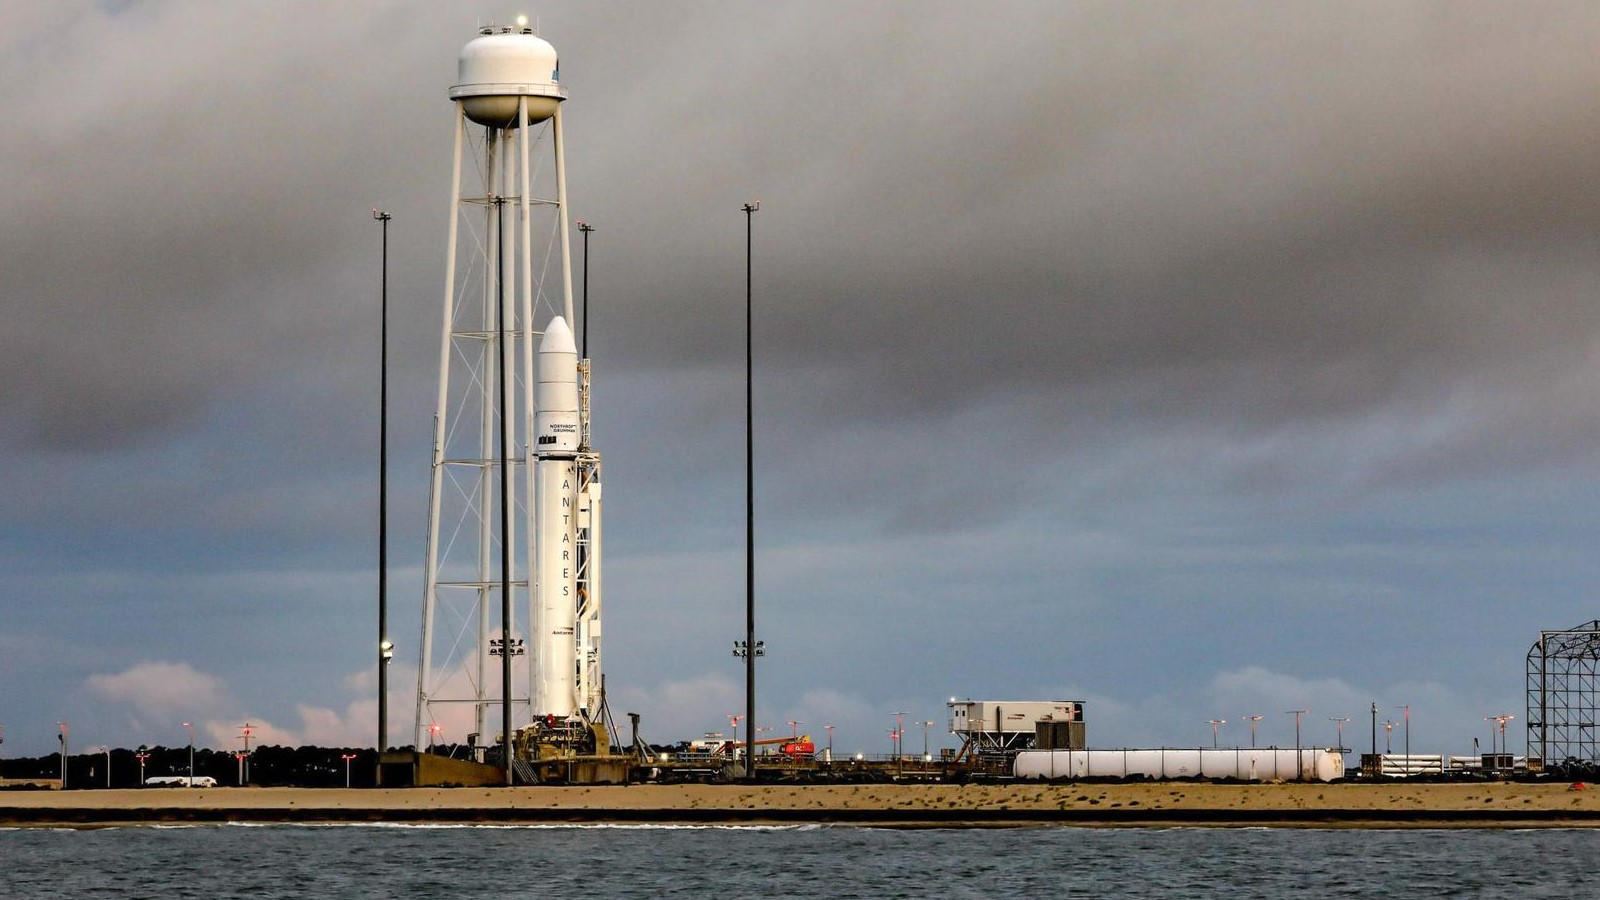 The Antares rocket with the NG-16 Cygnus spacecraft encapsulated on top. Credit: NASA